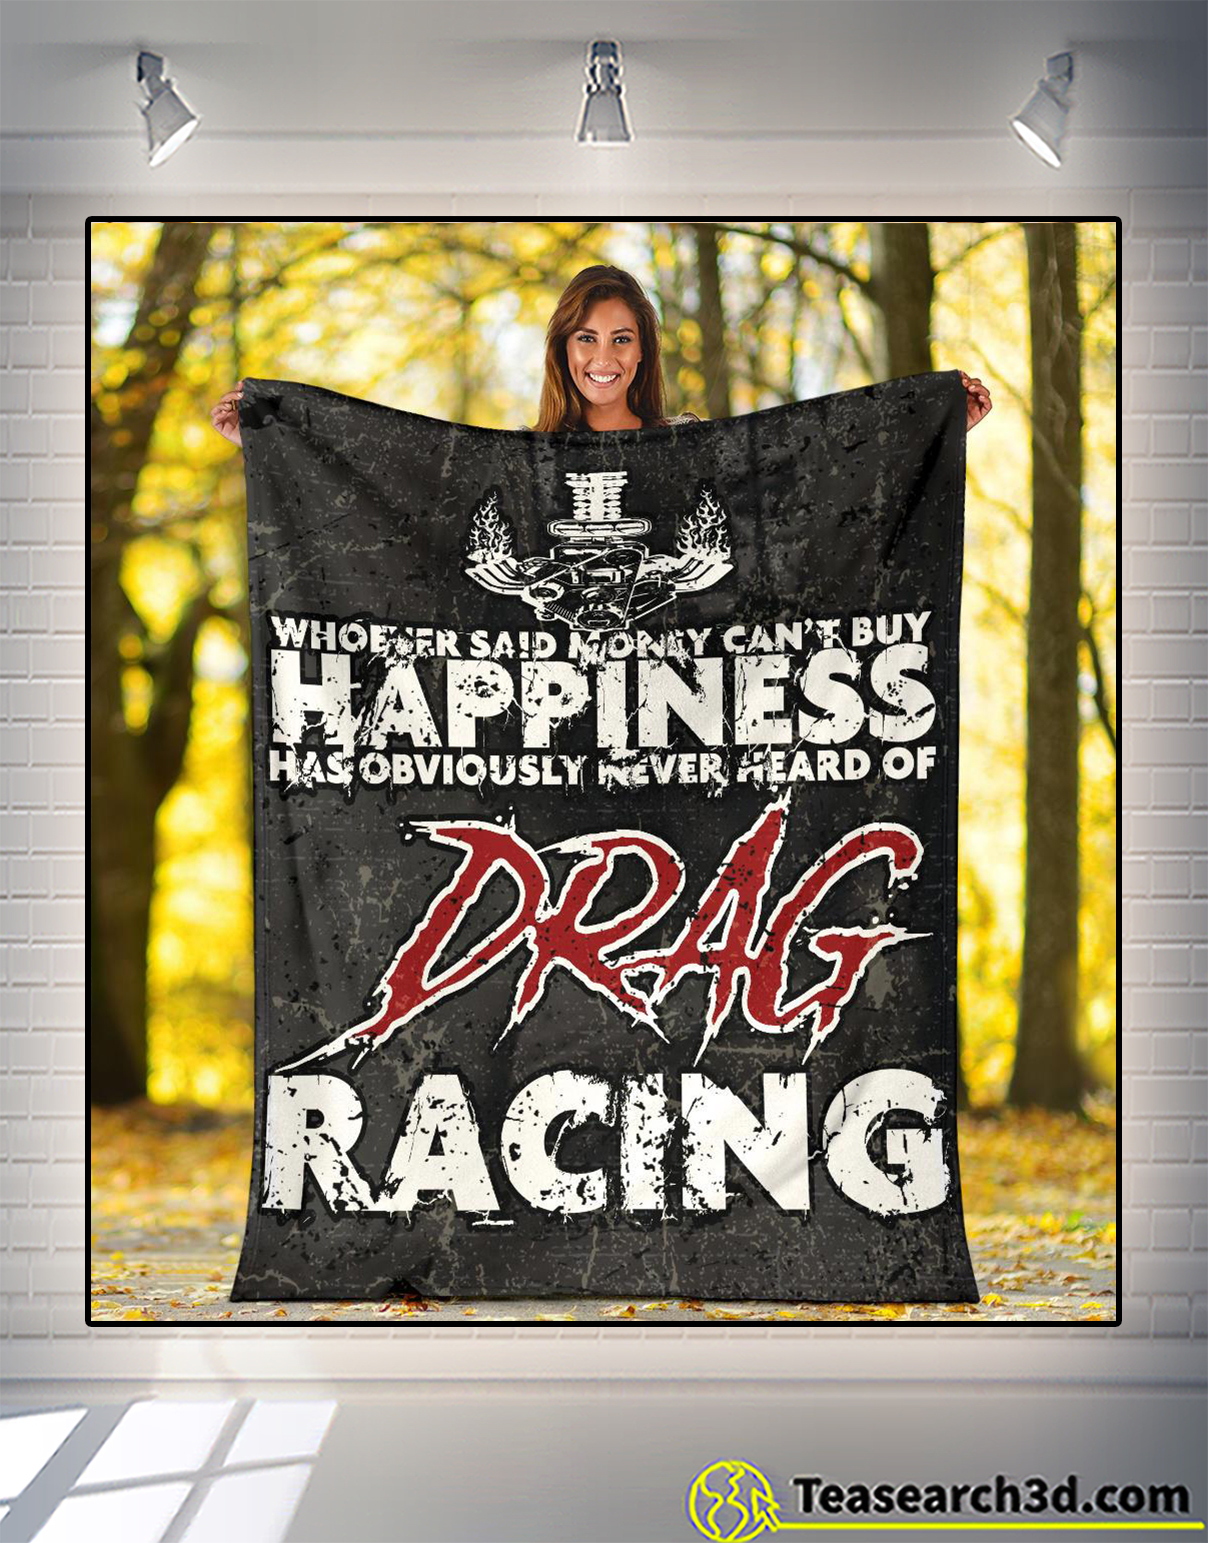 Whoever said money can't buy happiness has obviously never heard of drag racing blanket